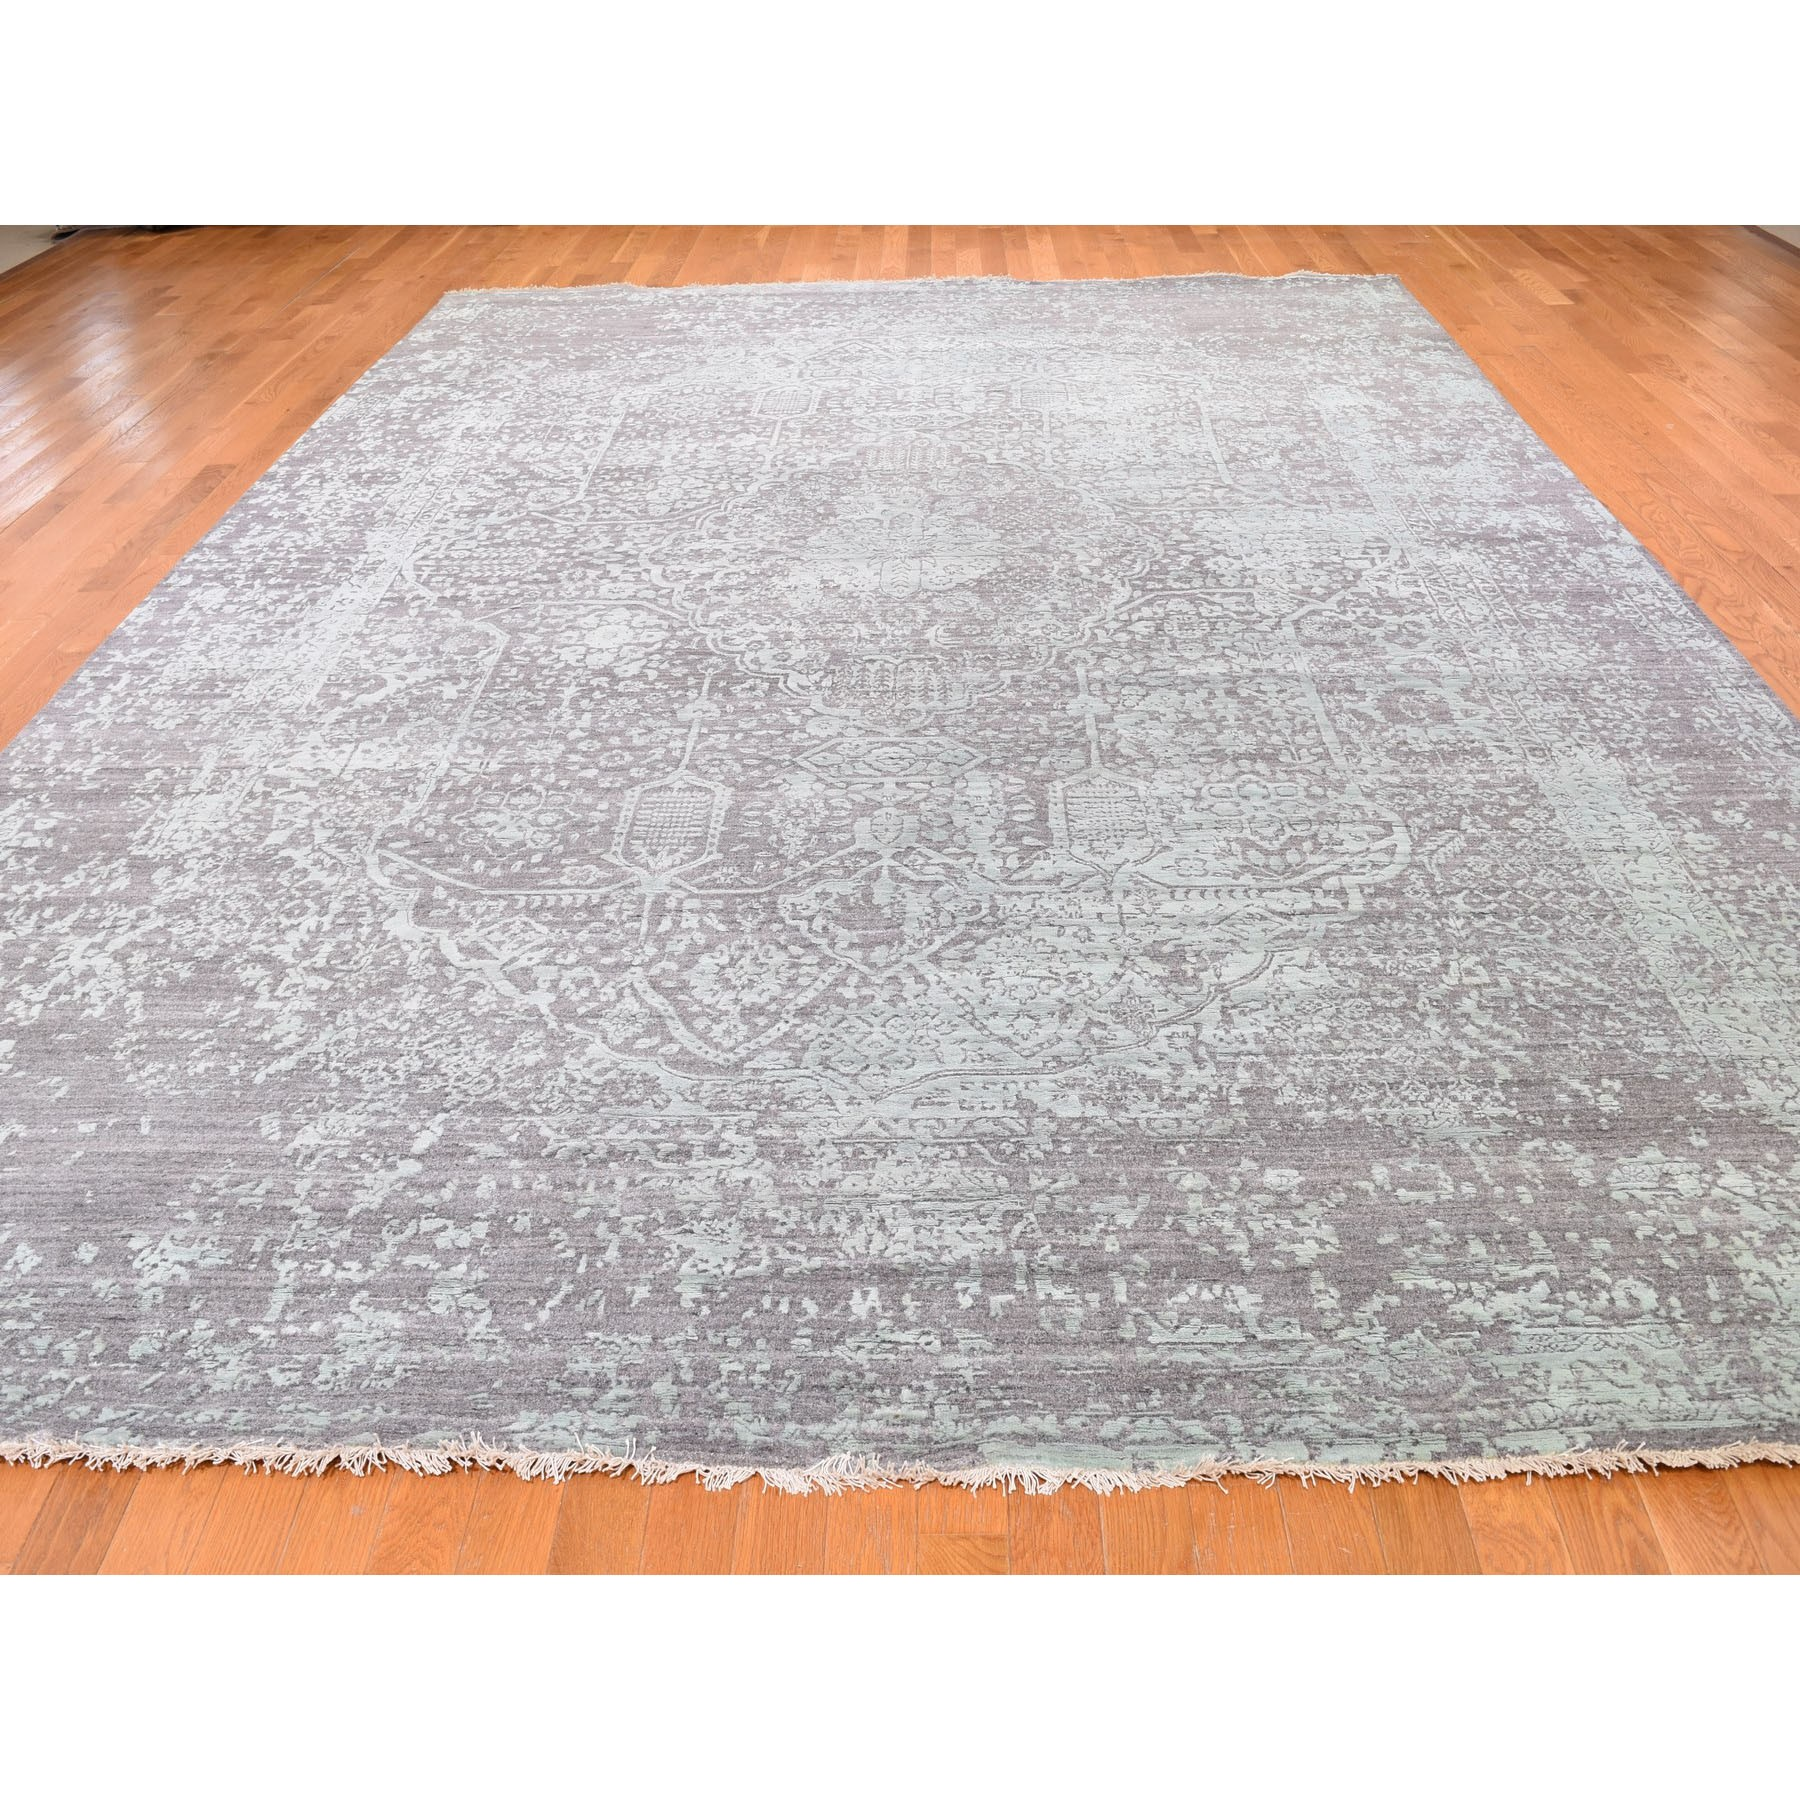 "9'10""x13'10"" Wool and Silk Hand Knotted Broken Persian Design Oriental Rug"